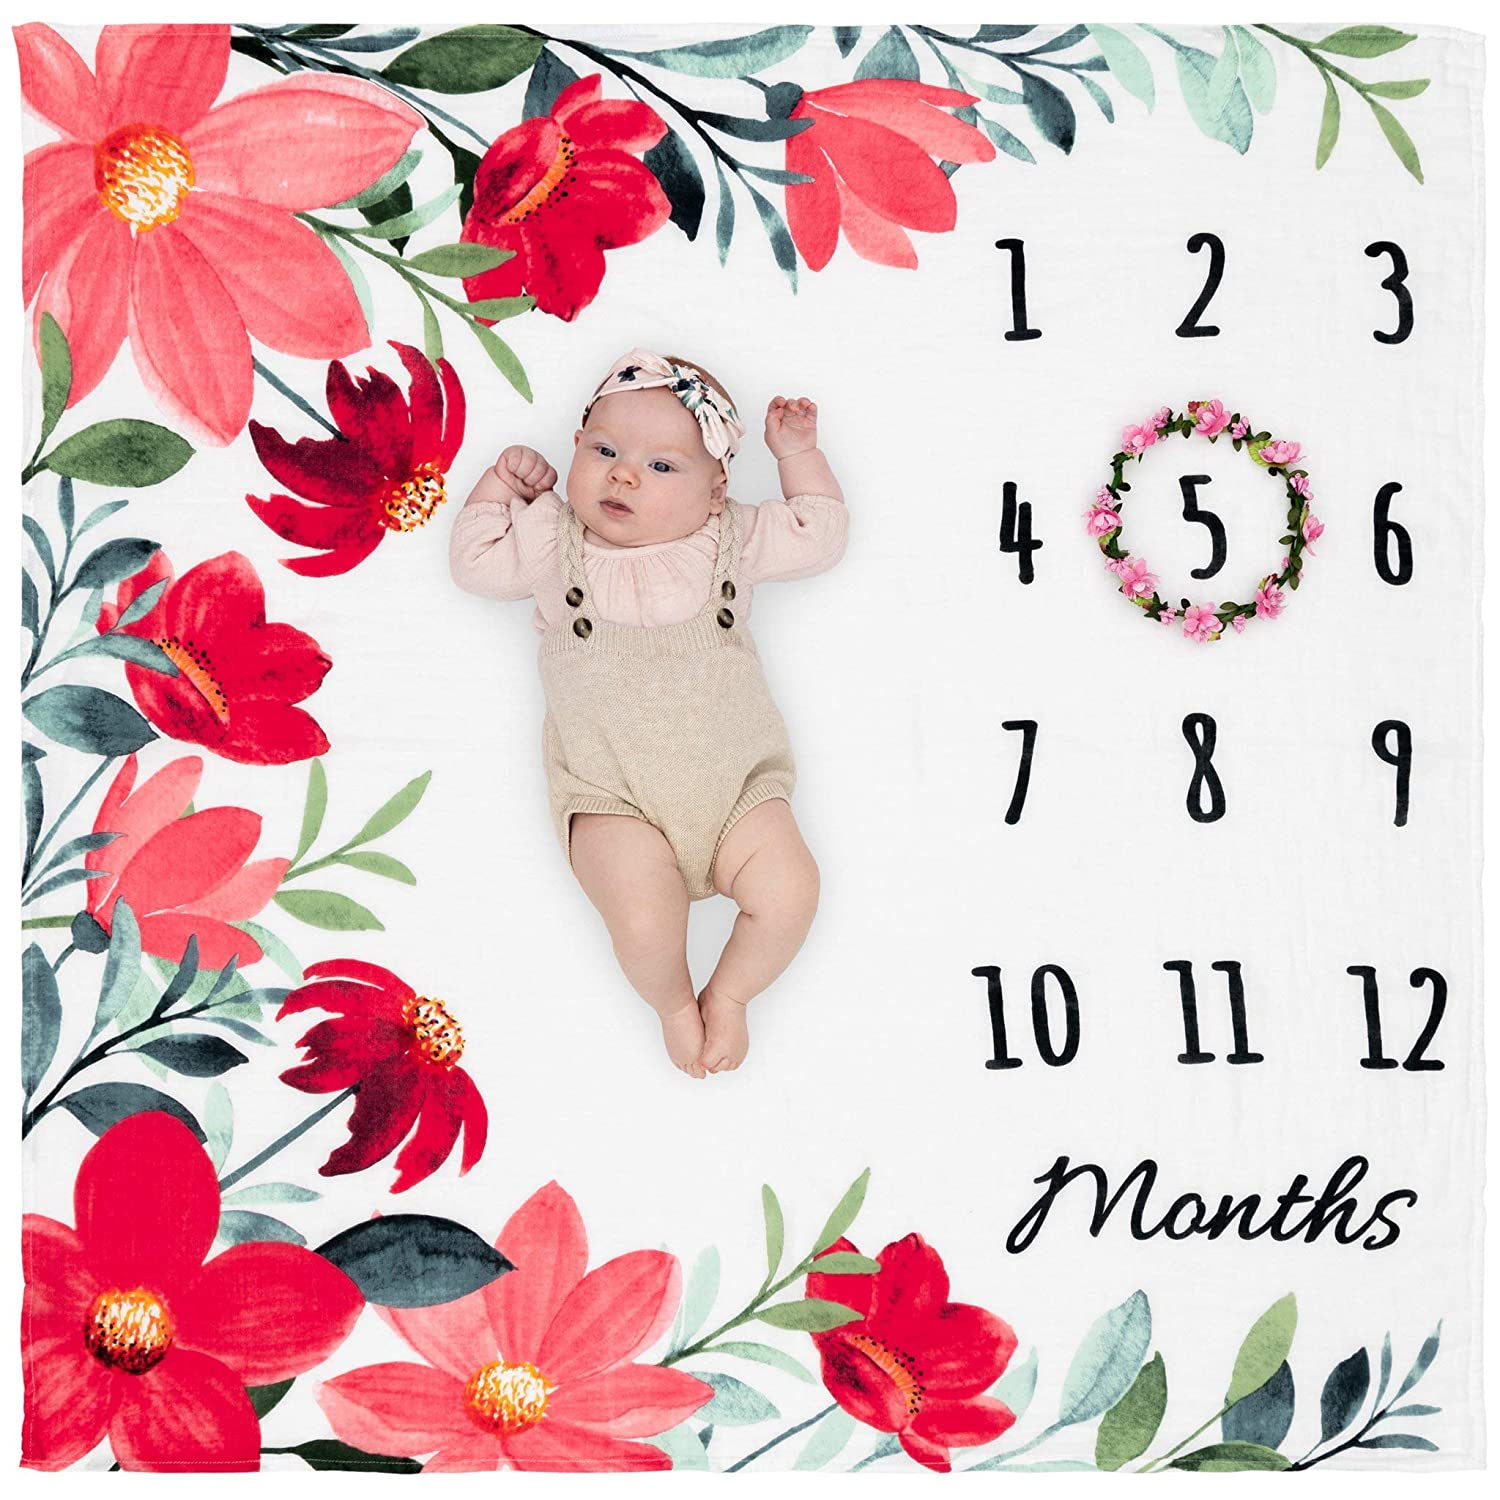 """Organic Baby Monthly Milestone Blanket Girl - Floral Month Blanket with Months Wreath Frame - Flowers Milestone Blanket for Newborn to 12 Months Milestones, Baby Pictures, 47""""x47"""""""